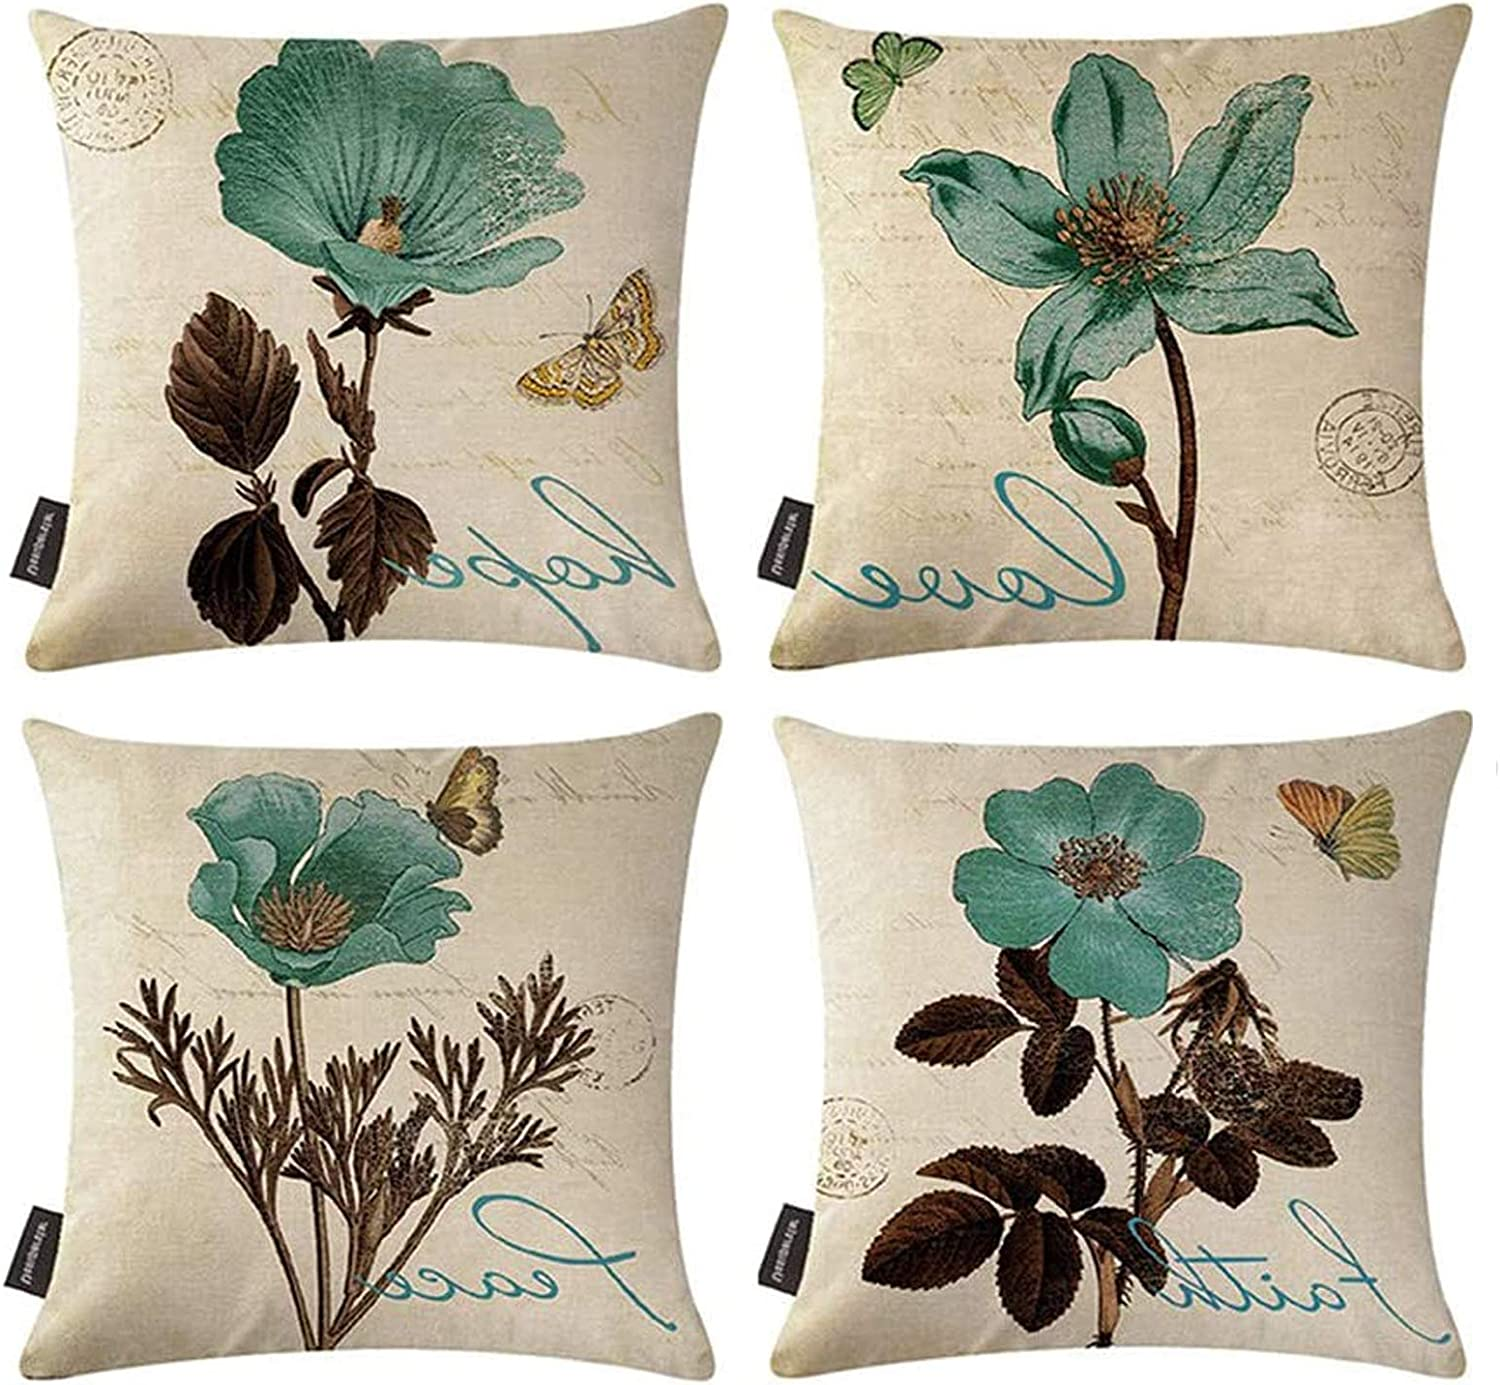 Bohemian Floral Cotton Velvet Fabric Cushion Cover Decorative Throw Pillow Case